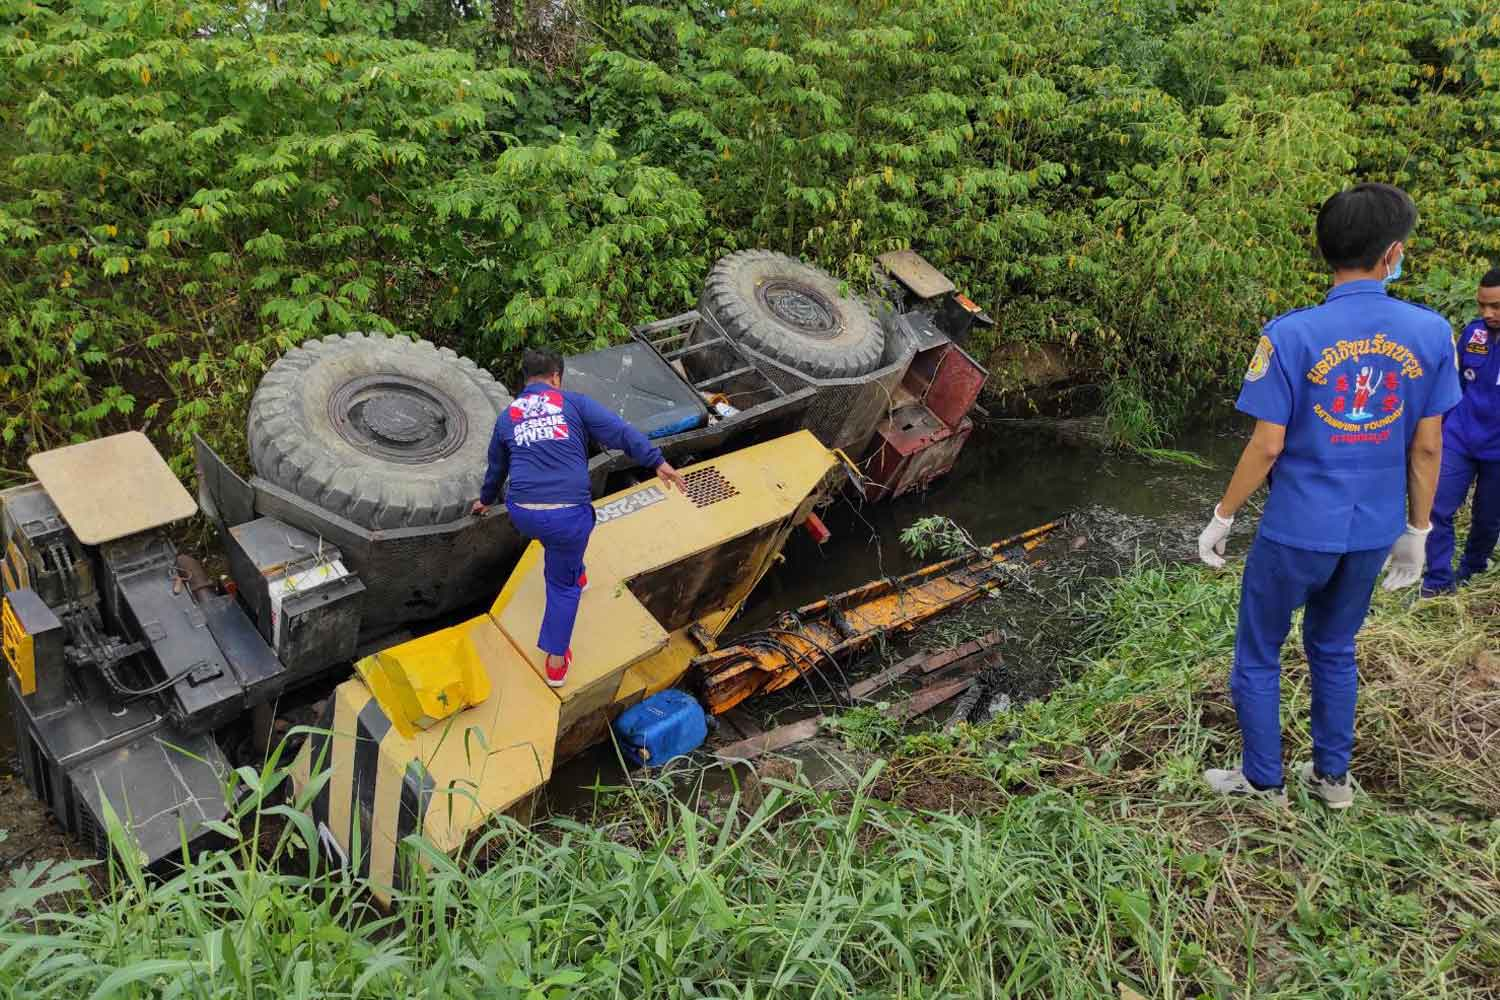 Rescuers try unsuccessfully to help the trapped driver of the partially submerged mobile crane, which toppled into this deep ditch when the edge of the road crumbled, in Tha Muang district, Kanchanaburi on Monday. (Photo: Piyarat Chongcharoen)